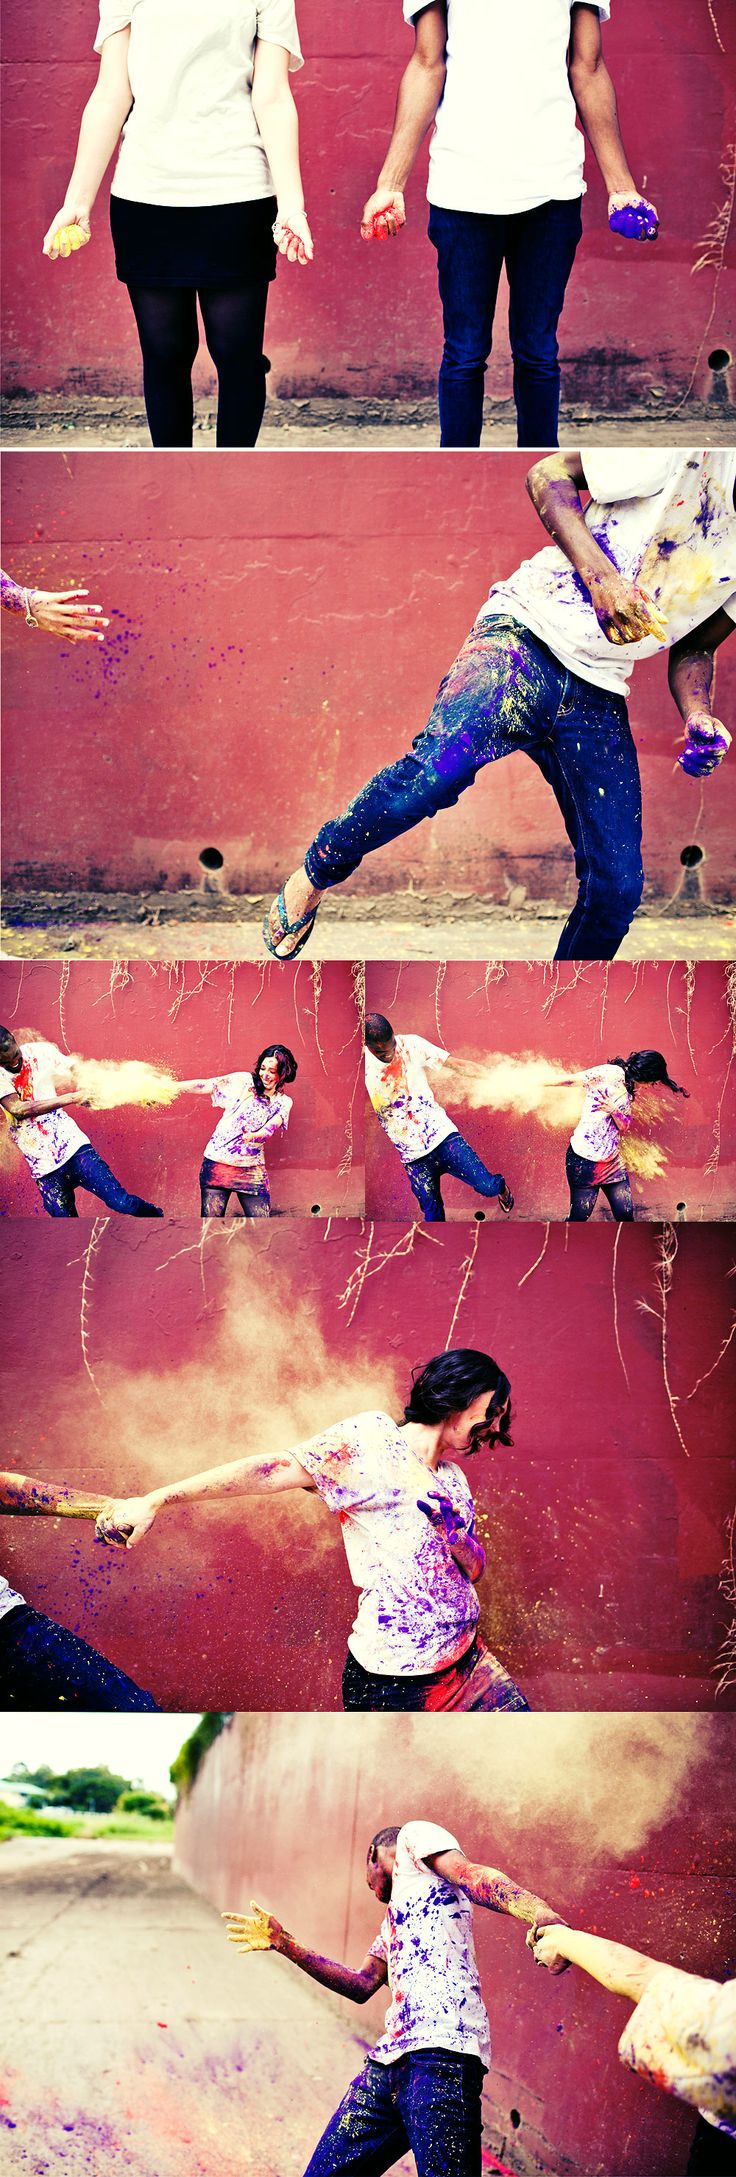 best engagement photos ever... wish I wouldn't have been so lame in ours... Tiana plese do this @tiana hammer